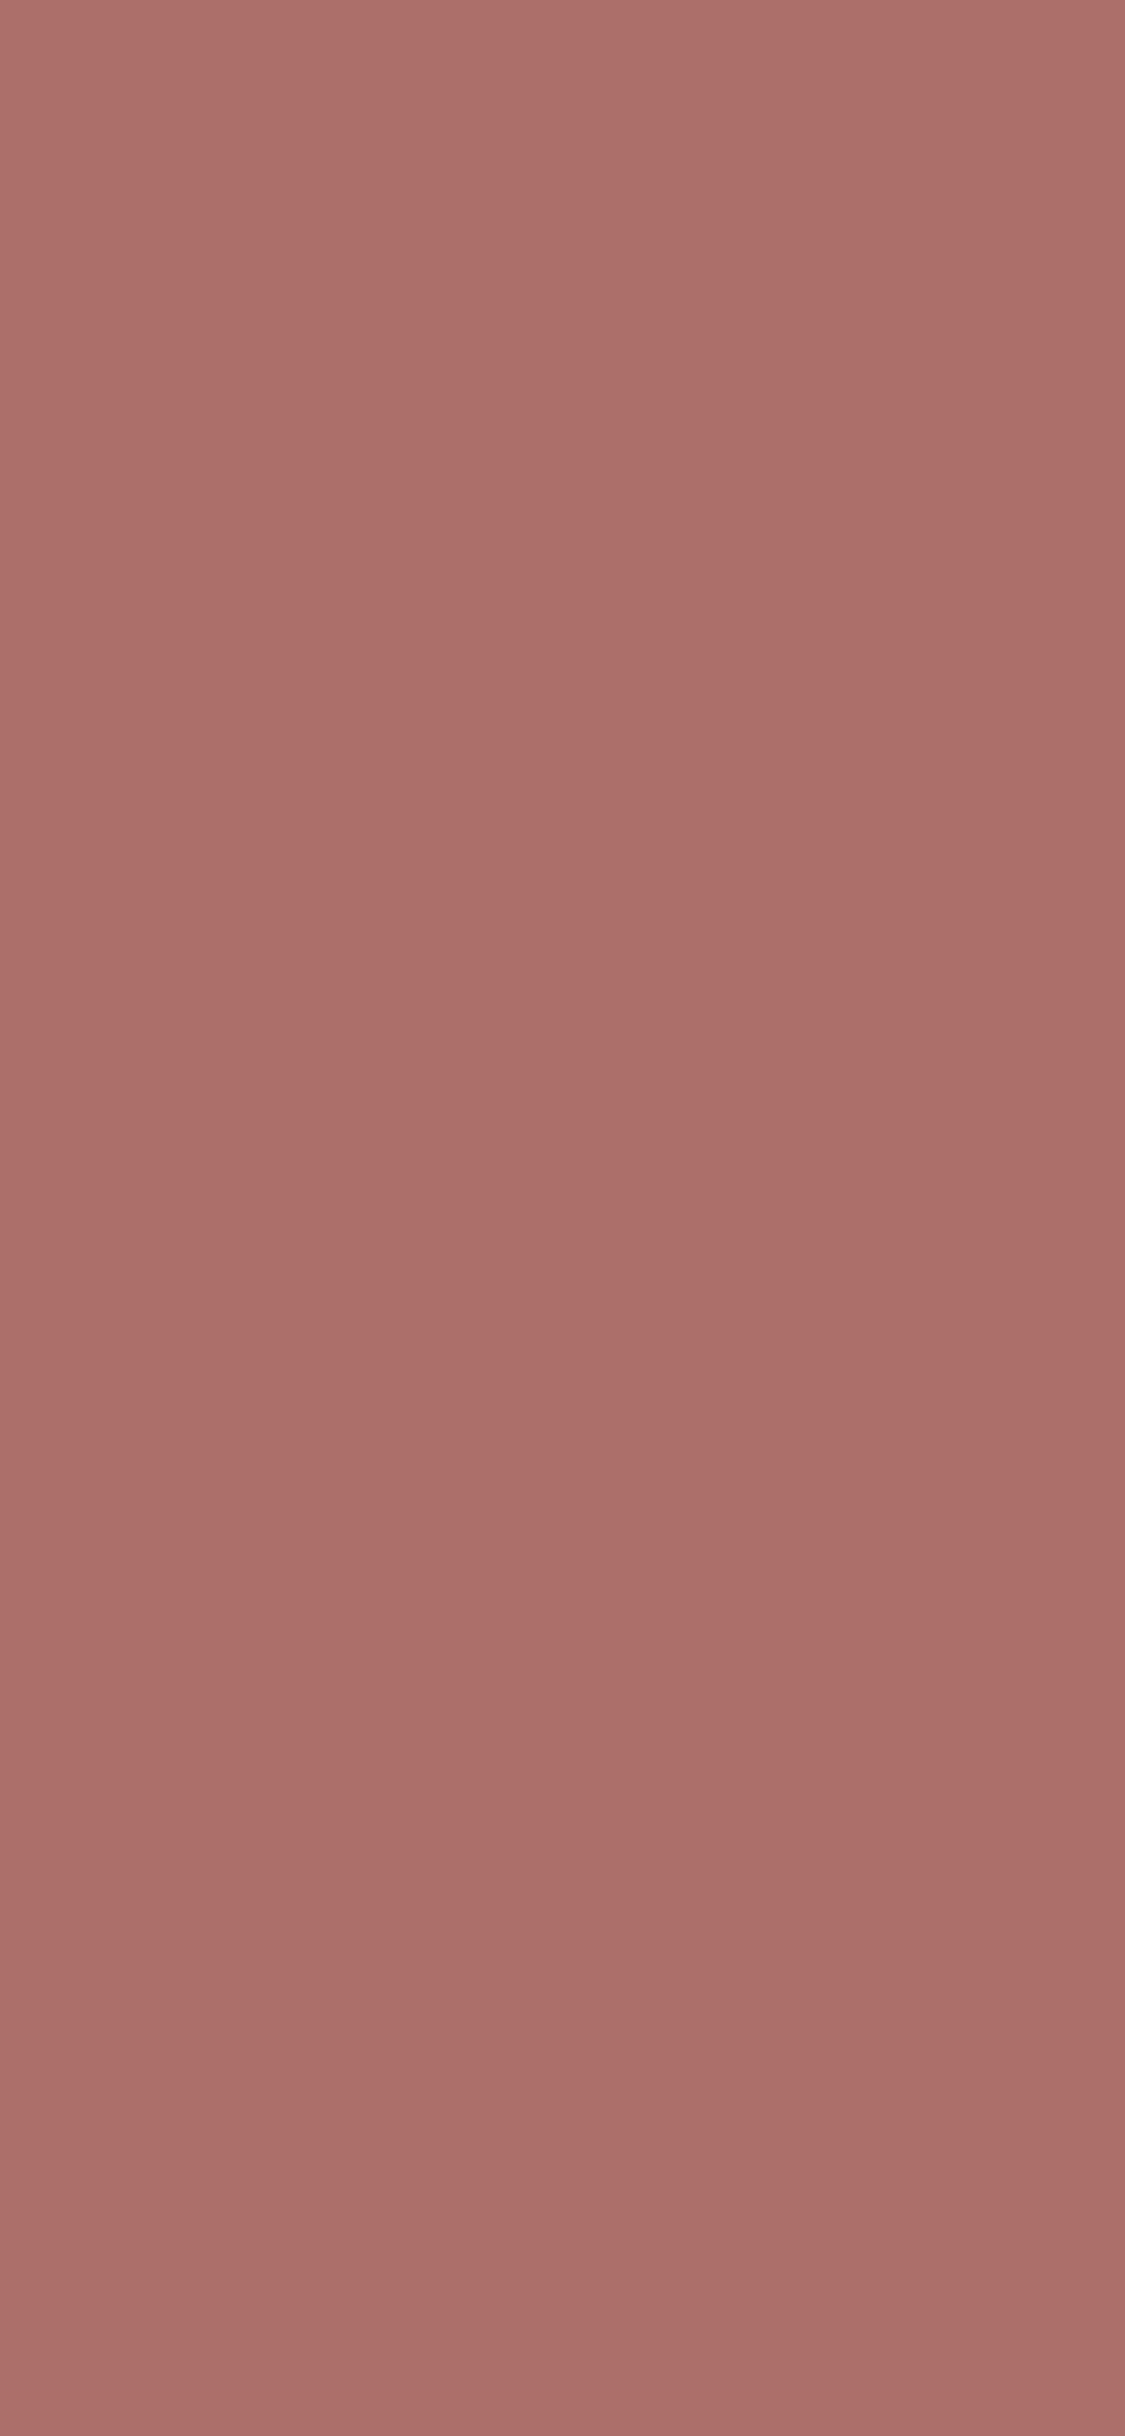 1125x2436 Copper Penny Solid Color Background